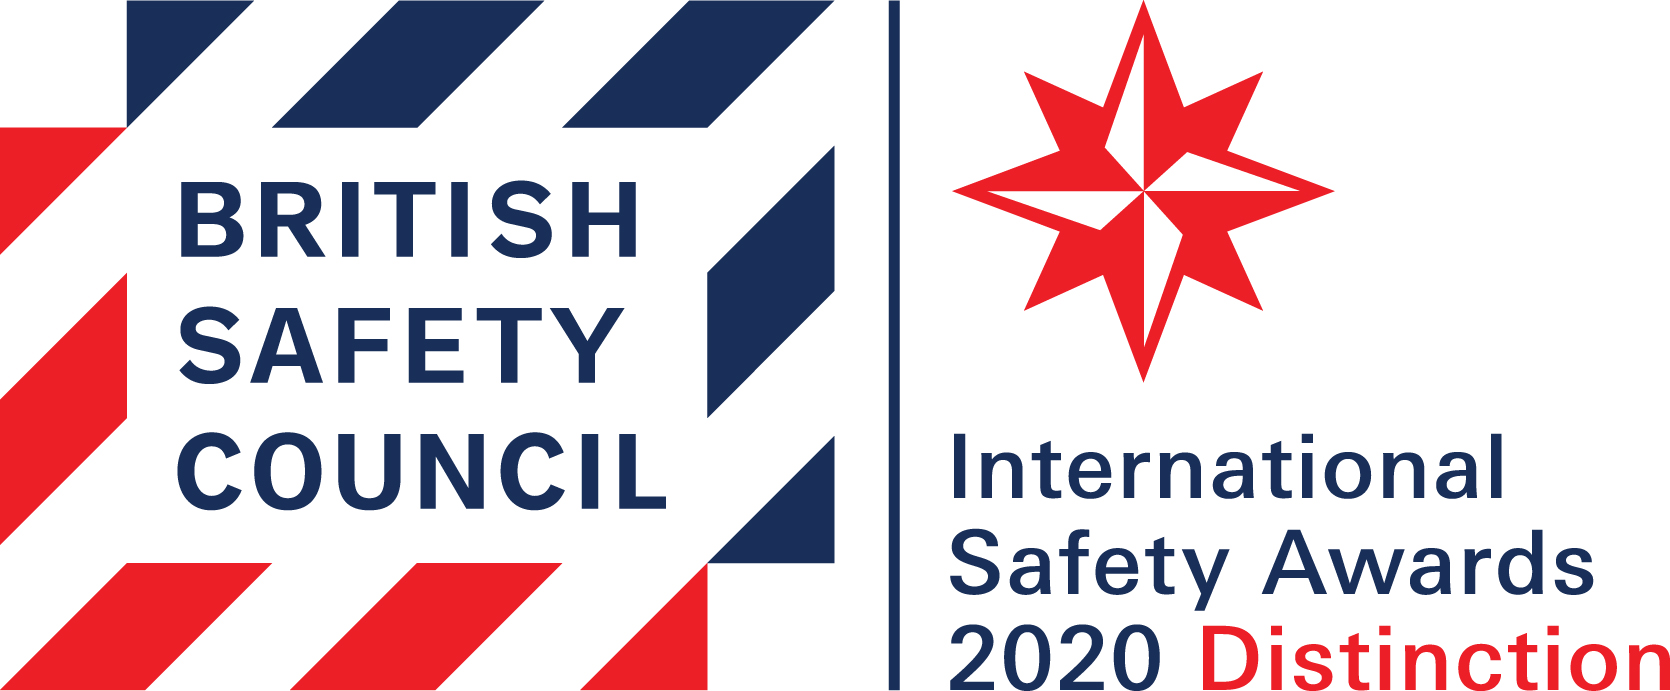 2020 International Safety Awards